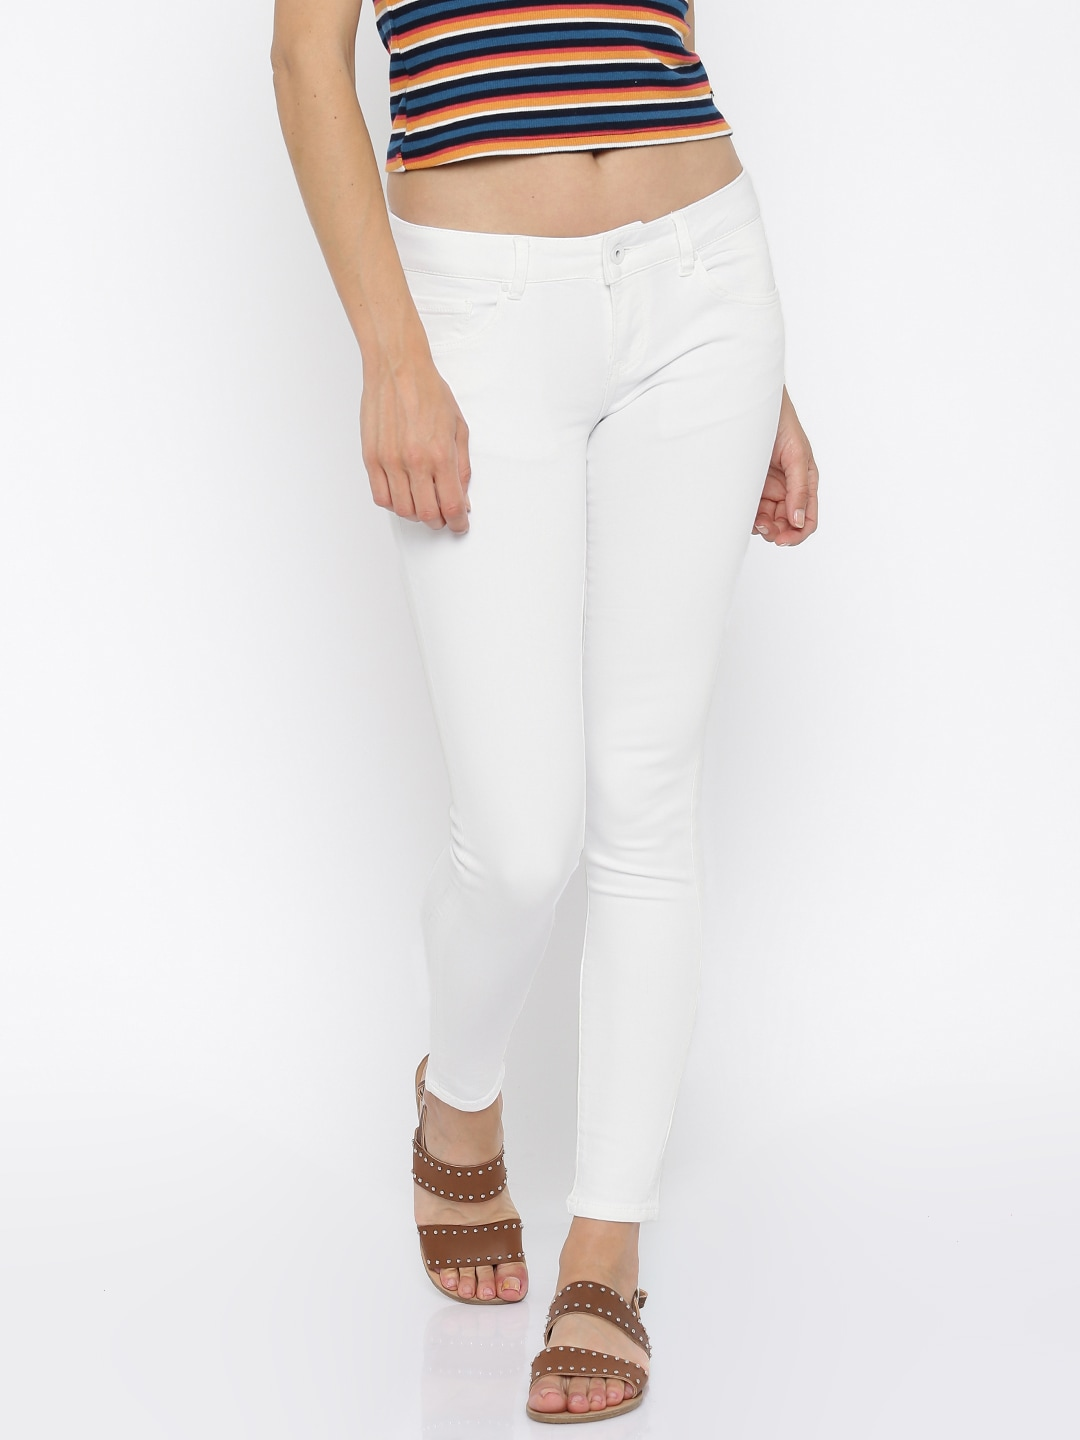 Collection White Skinny Jeans Women Pictures - The Fashions Of ...